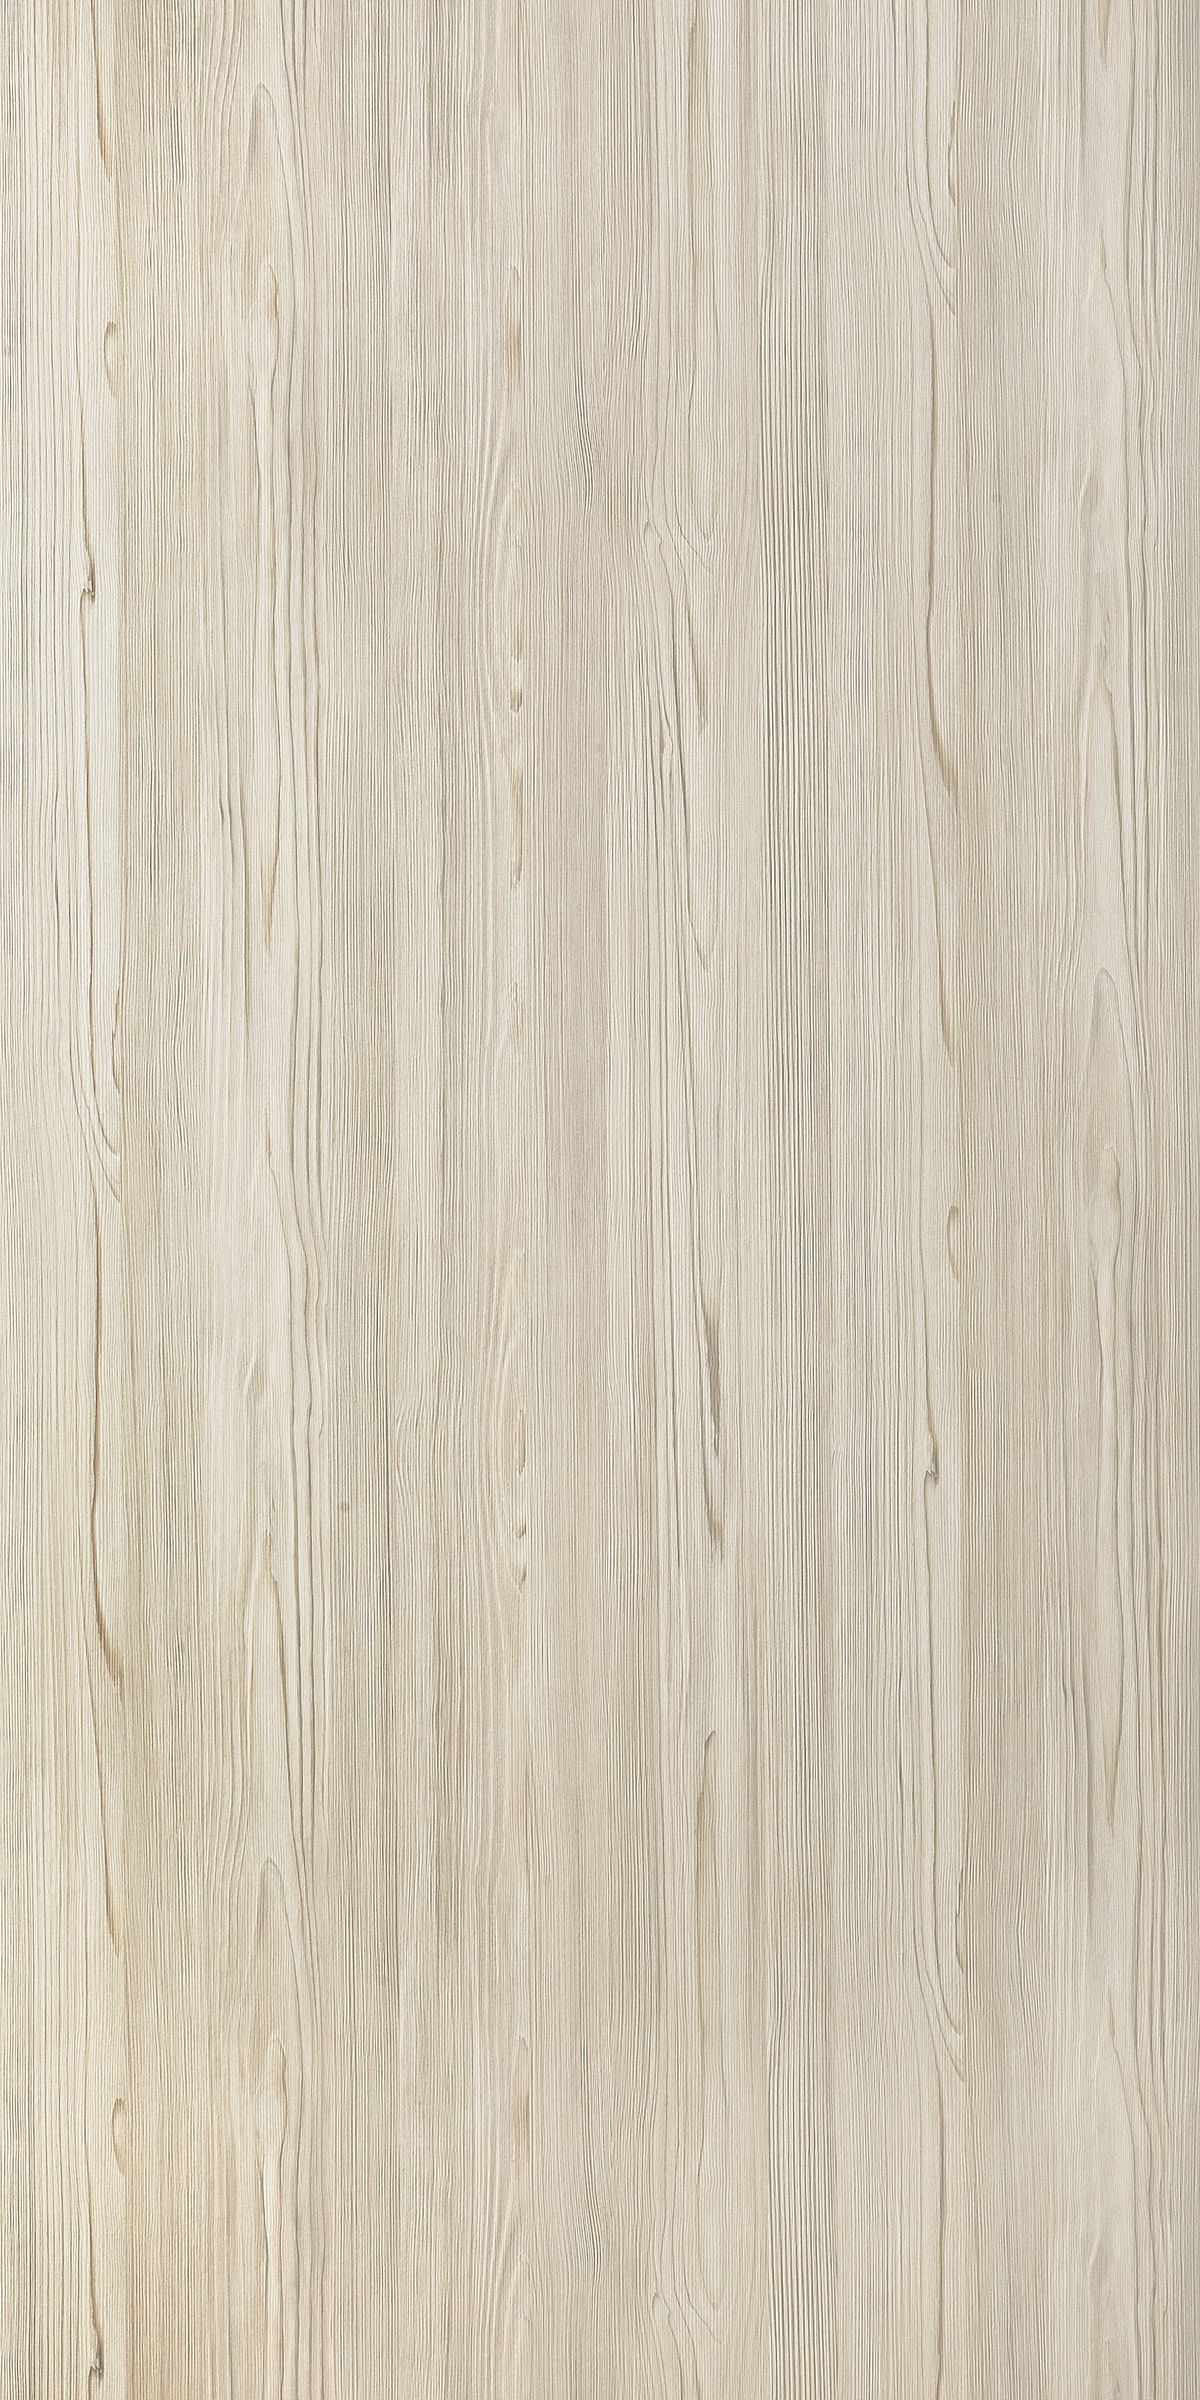 interior door texture. Floor Texture, Material Board, Wood Laminate, Wall Textures, Stain, Interior Office, Door, Design Patterns, Wallpaper Direct Door Texture O